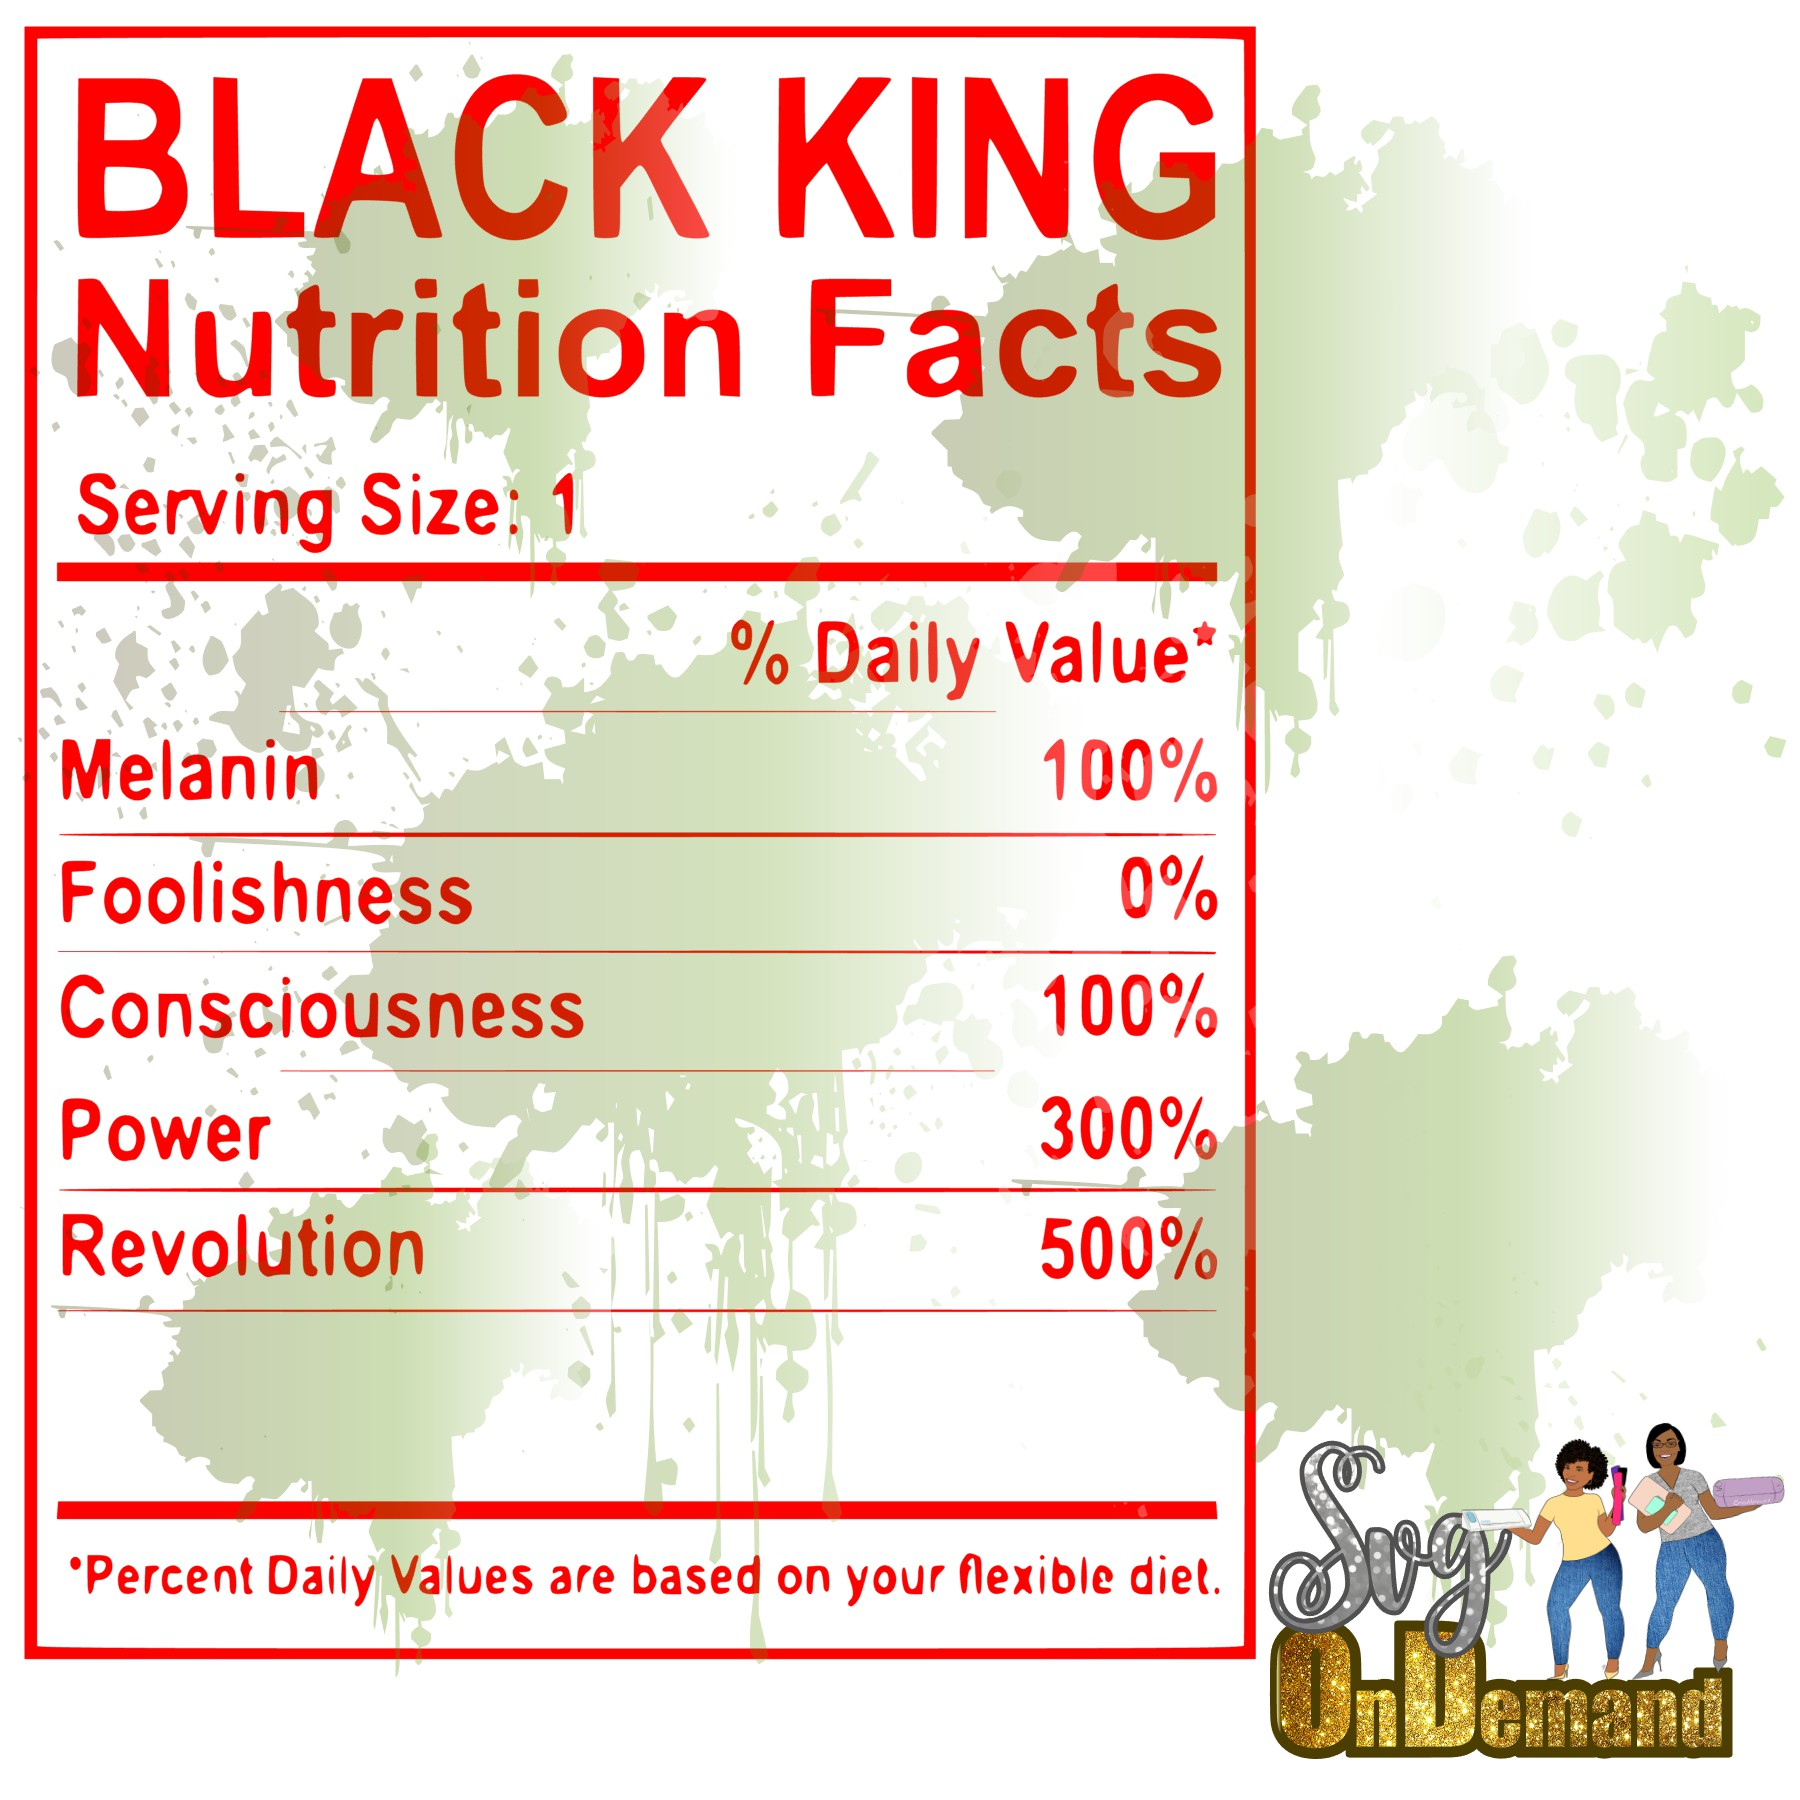 Black Man Nutrition Facts